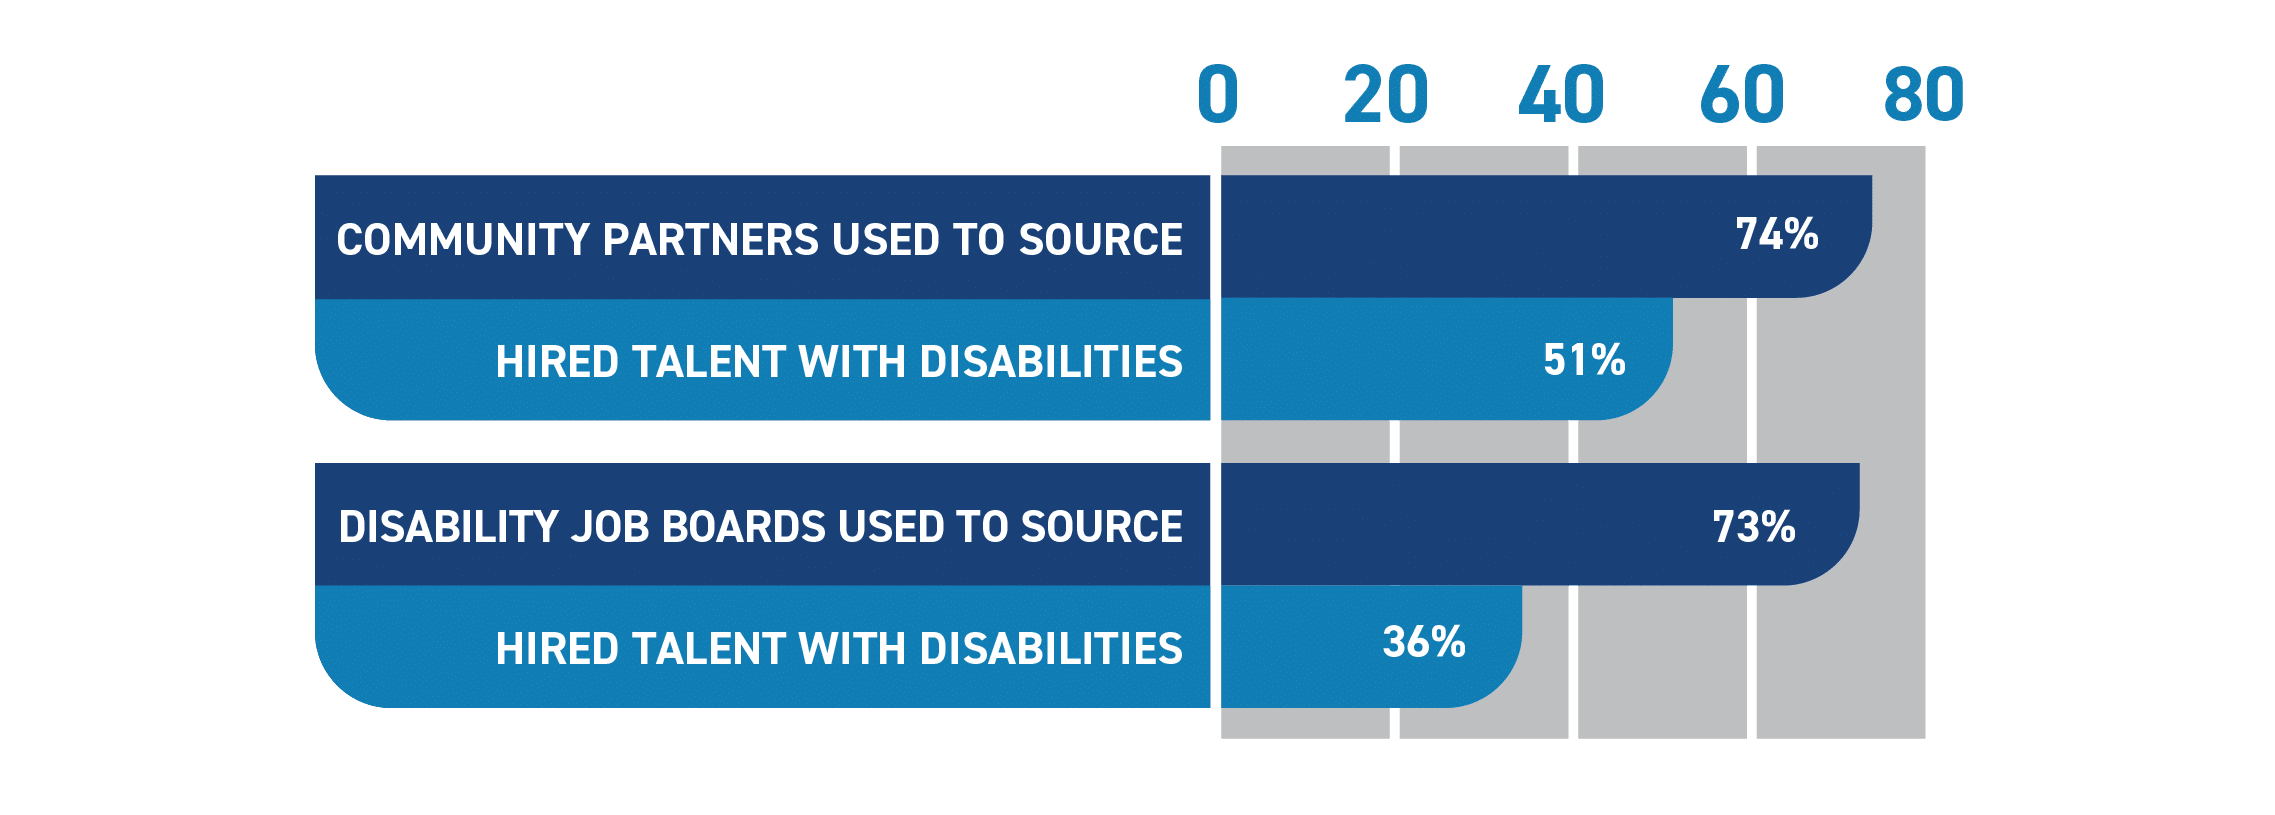 Graph showing percentage of companies using sourcing specific channels, and of those, whether any hired talent with disabilities through them. Community Partners: 74% used, 51% hired; Disability Job Board: 73% used, 36% hired;